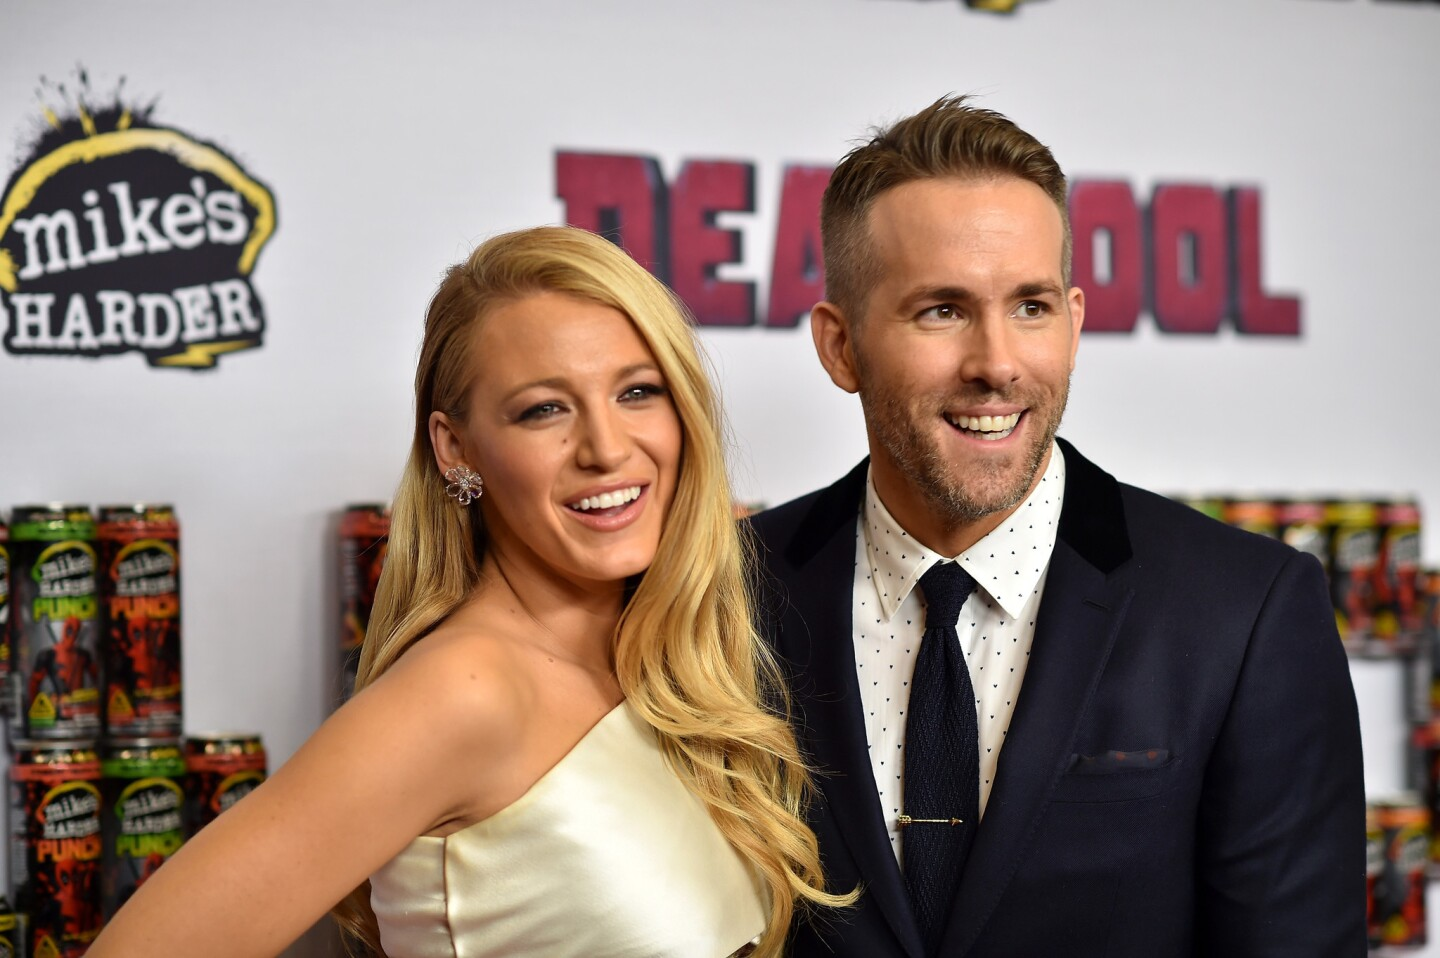 """Actors Blake Lively, left, and Ryan Reynolds attend a """"Deadpool"""" fan event at AMC Empire Theatre on Feb. 8, 2016 in New York City ahead of the Marvel film's release."""